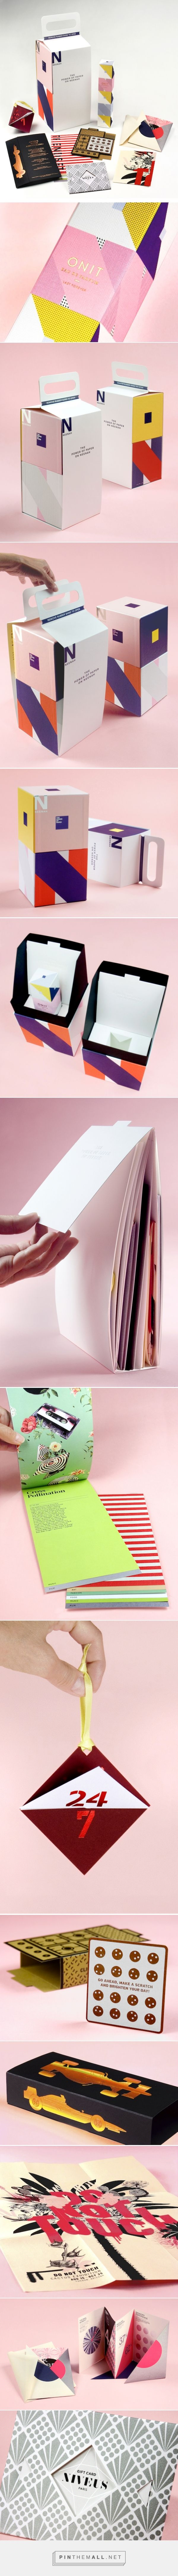 The Power of Paper: On Neenah #packaging